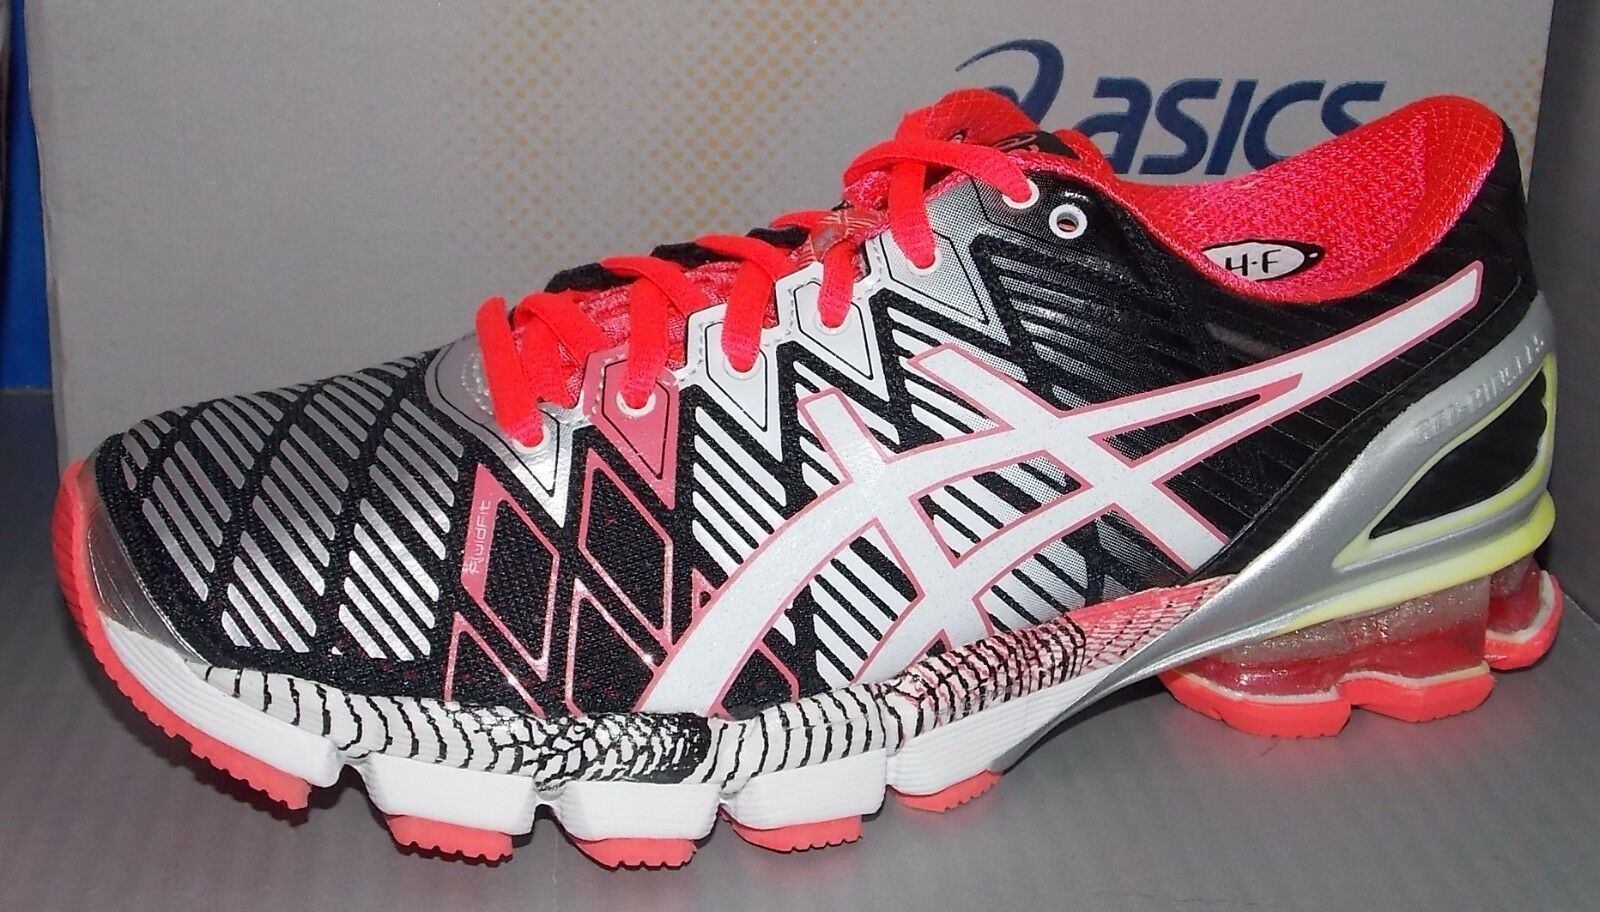 WOMENS ASICS GEL - KINSEI 5 in colors BLACK / SNOW / DIVA PINK SIZE 6 The most popular shoes for men and women